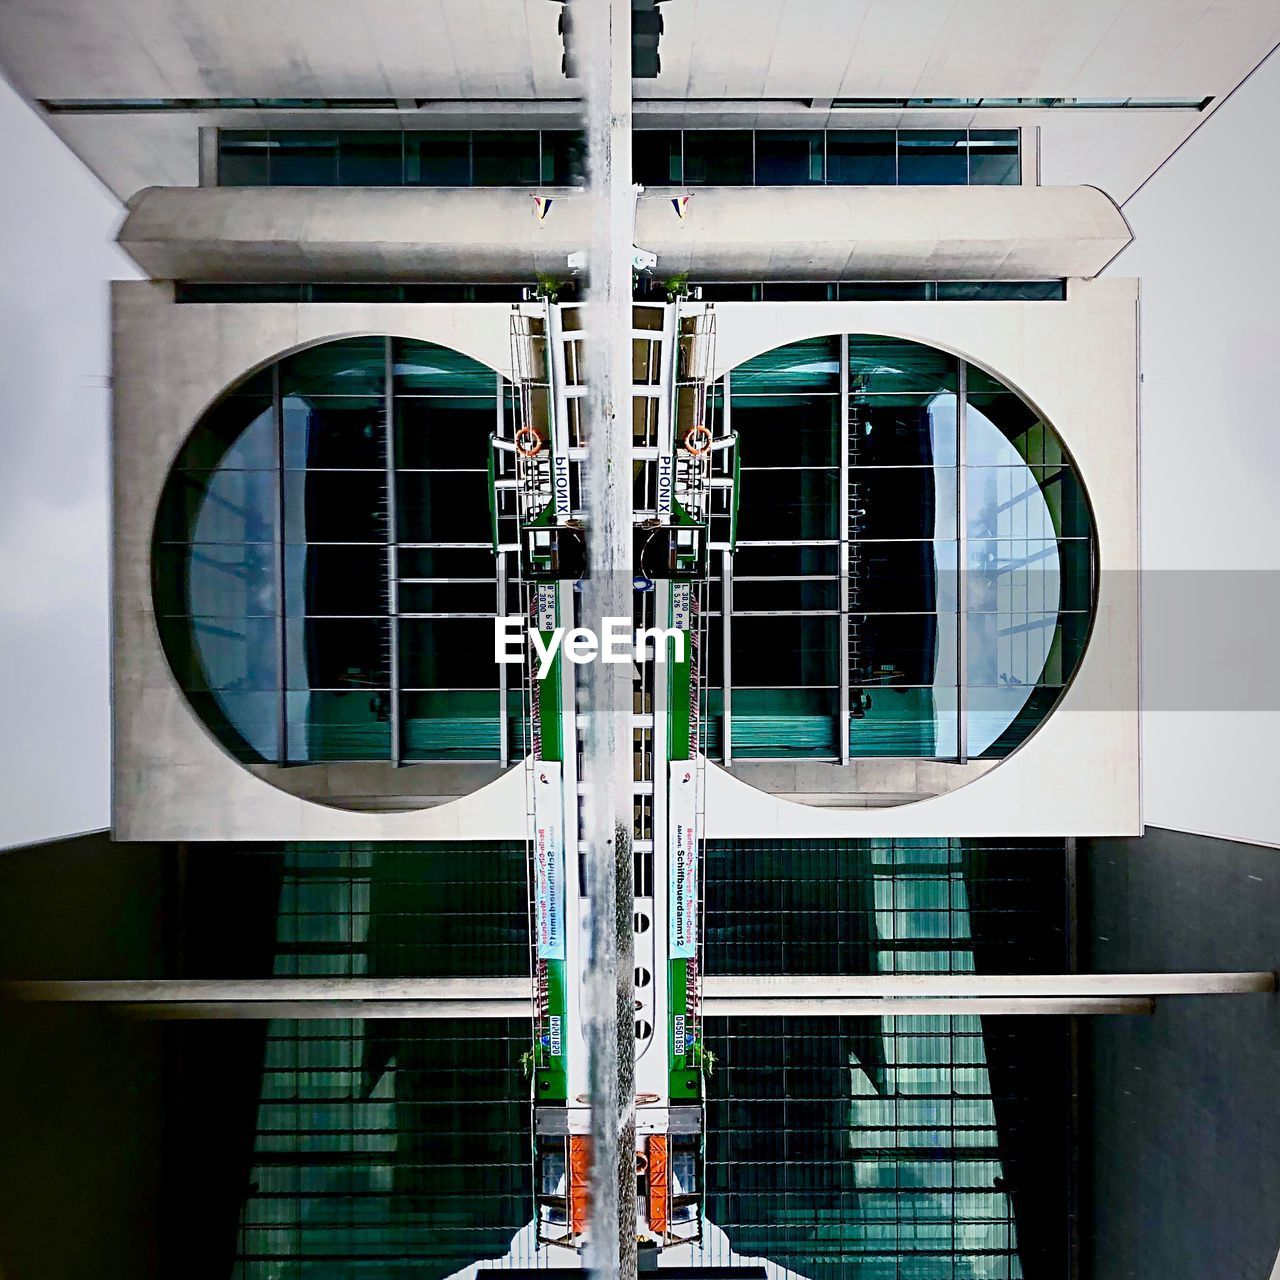 built structure, architecture, building exterior, window, building, glass - material, day, no people, reflection, outdoors, city, geometric shape, modern, shape, transparent, low angle view, sunlight, nature, close-up, office